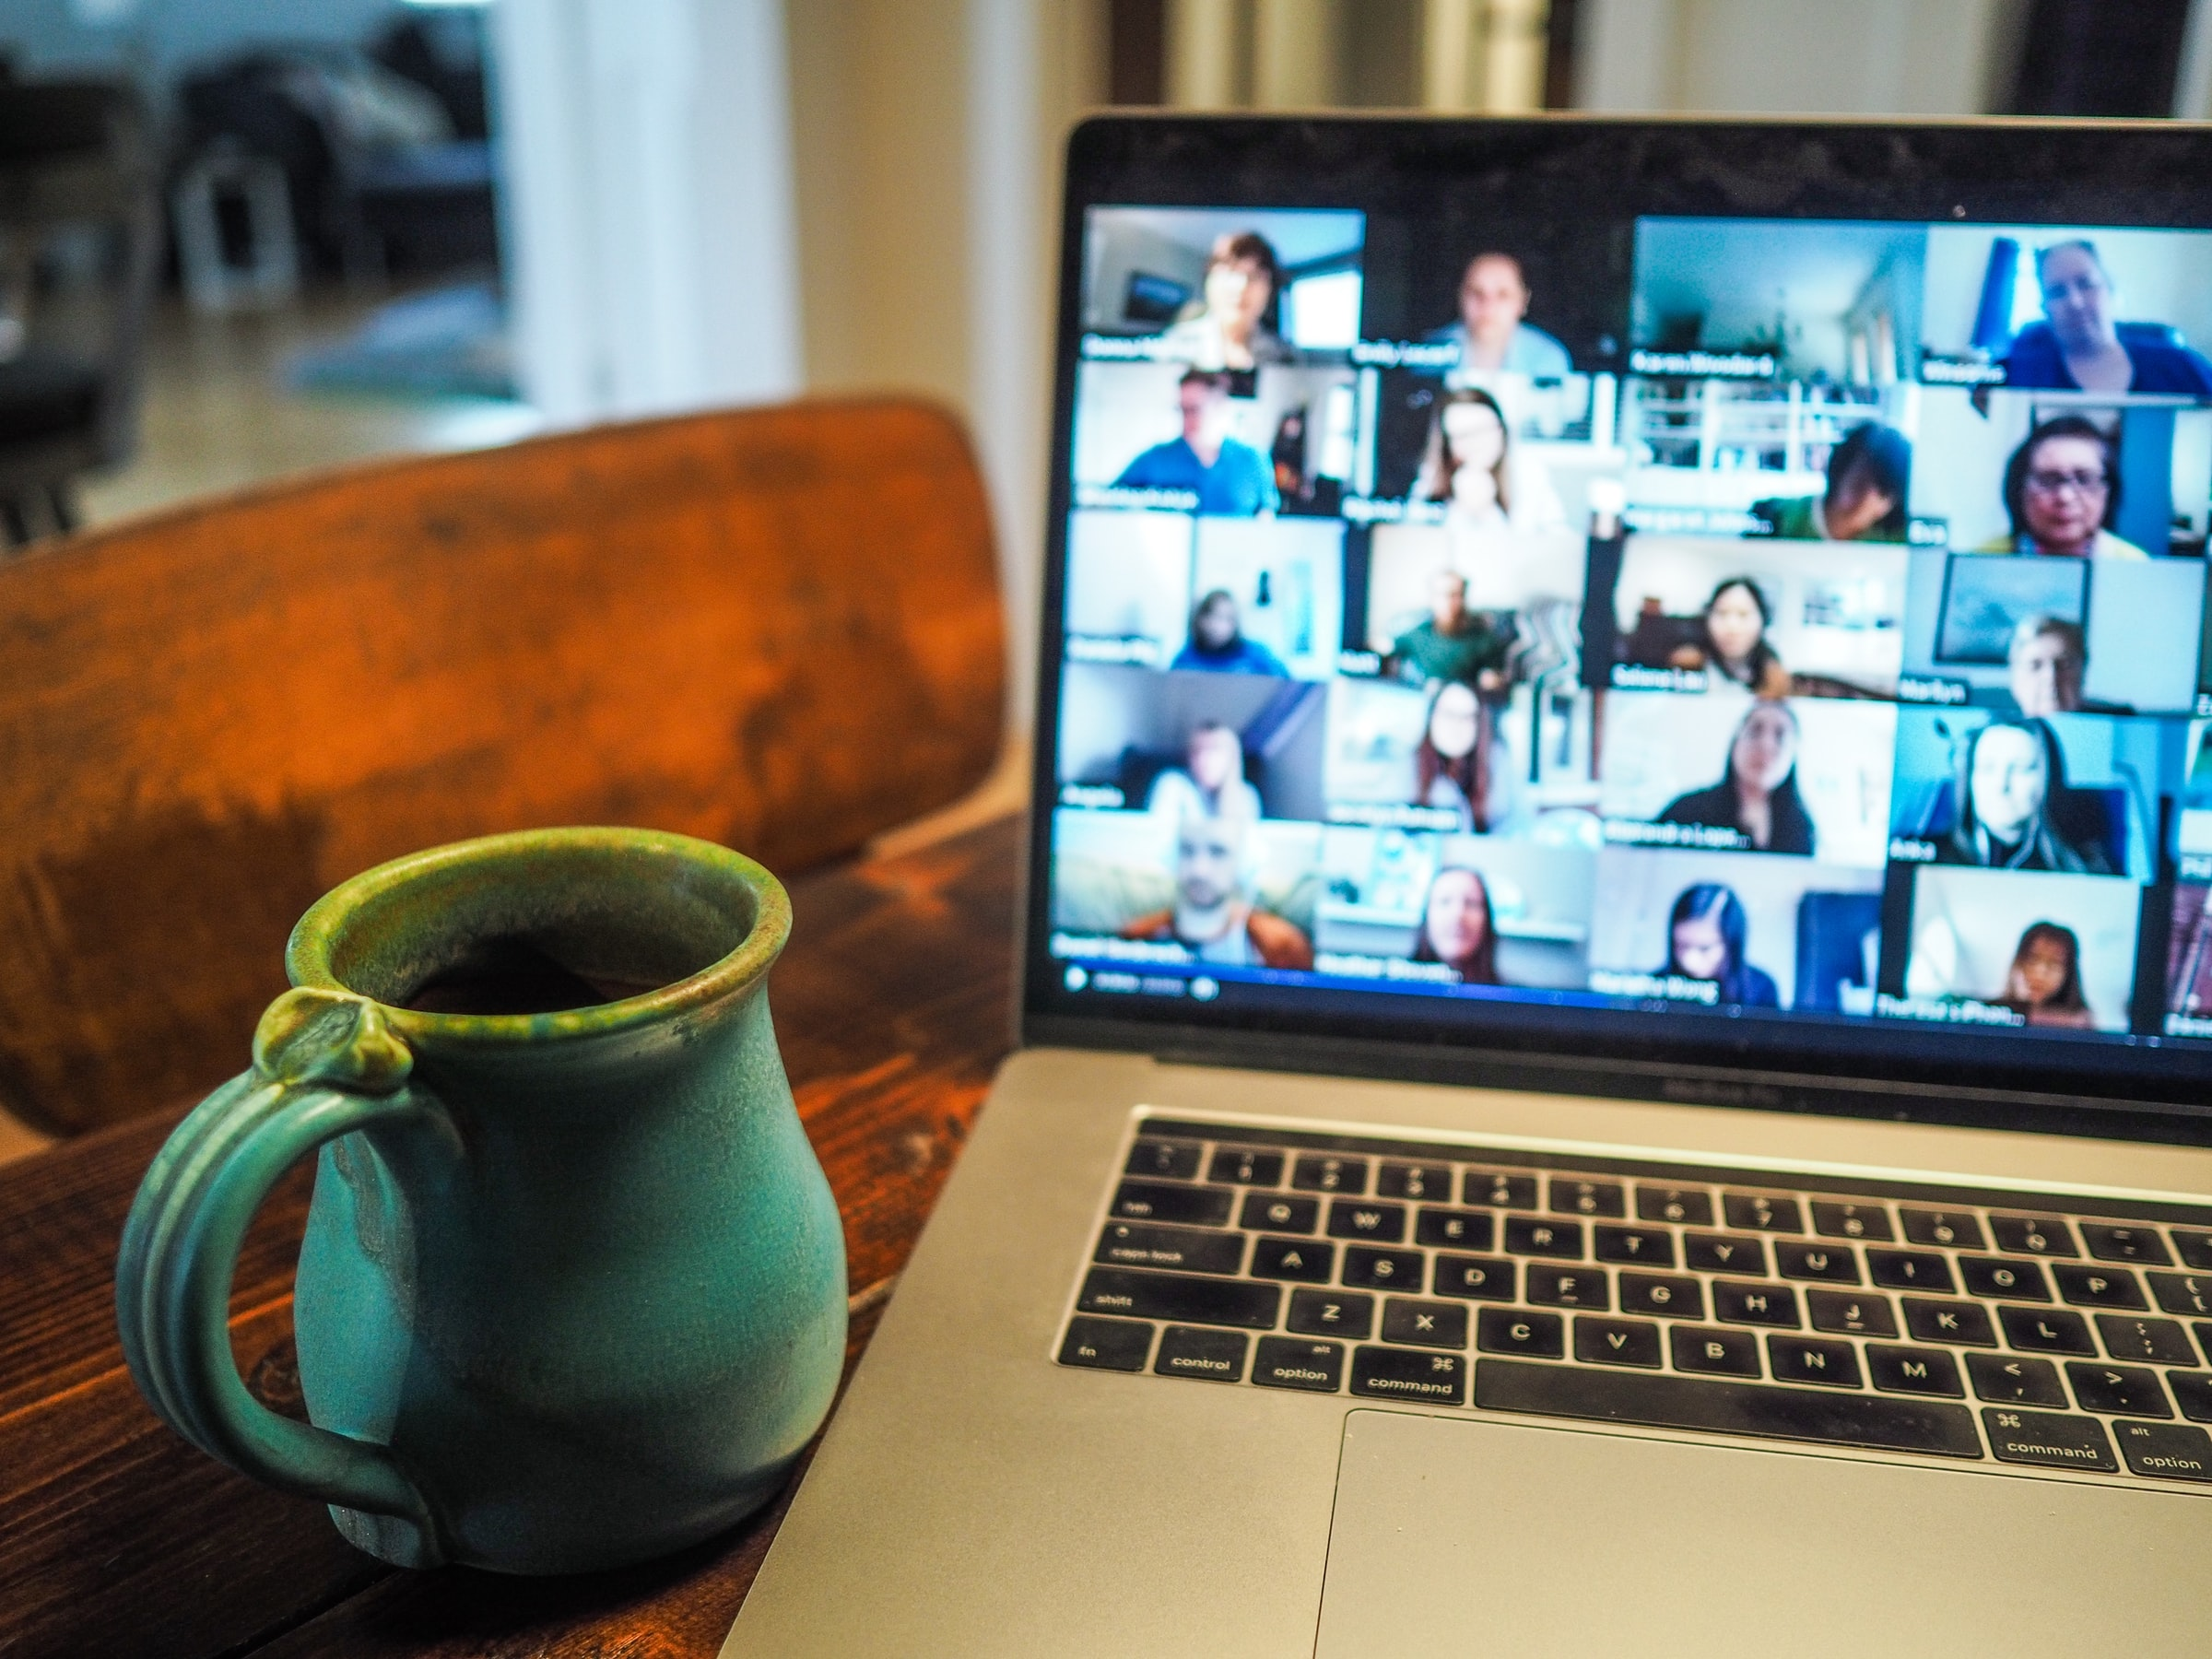 laptop-conference-call